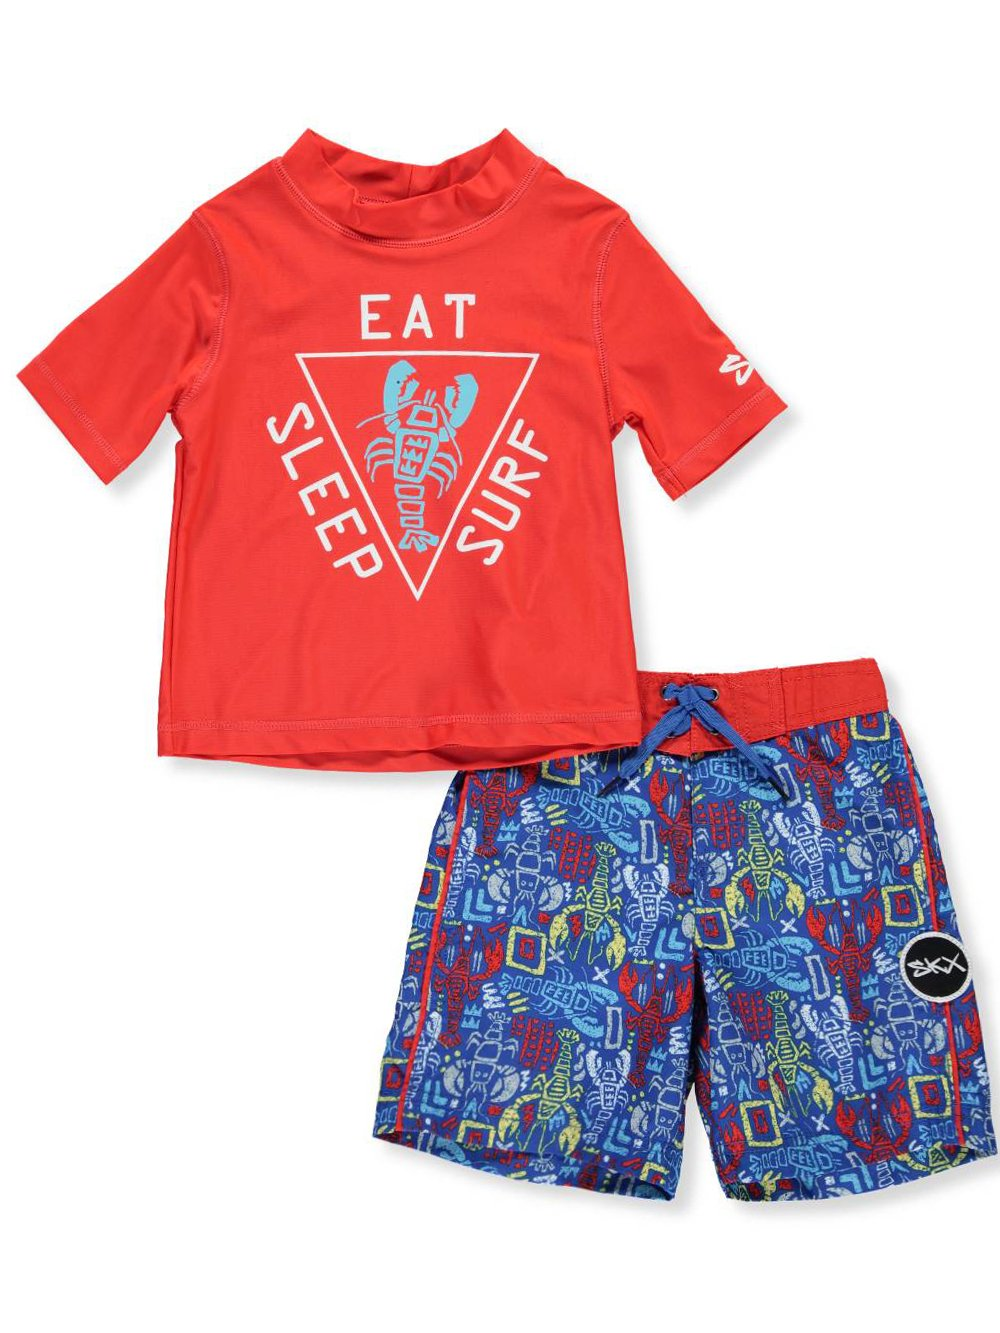 Skechers Boys Suit Set with Rashgaurd Swim Shirt